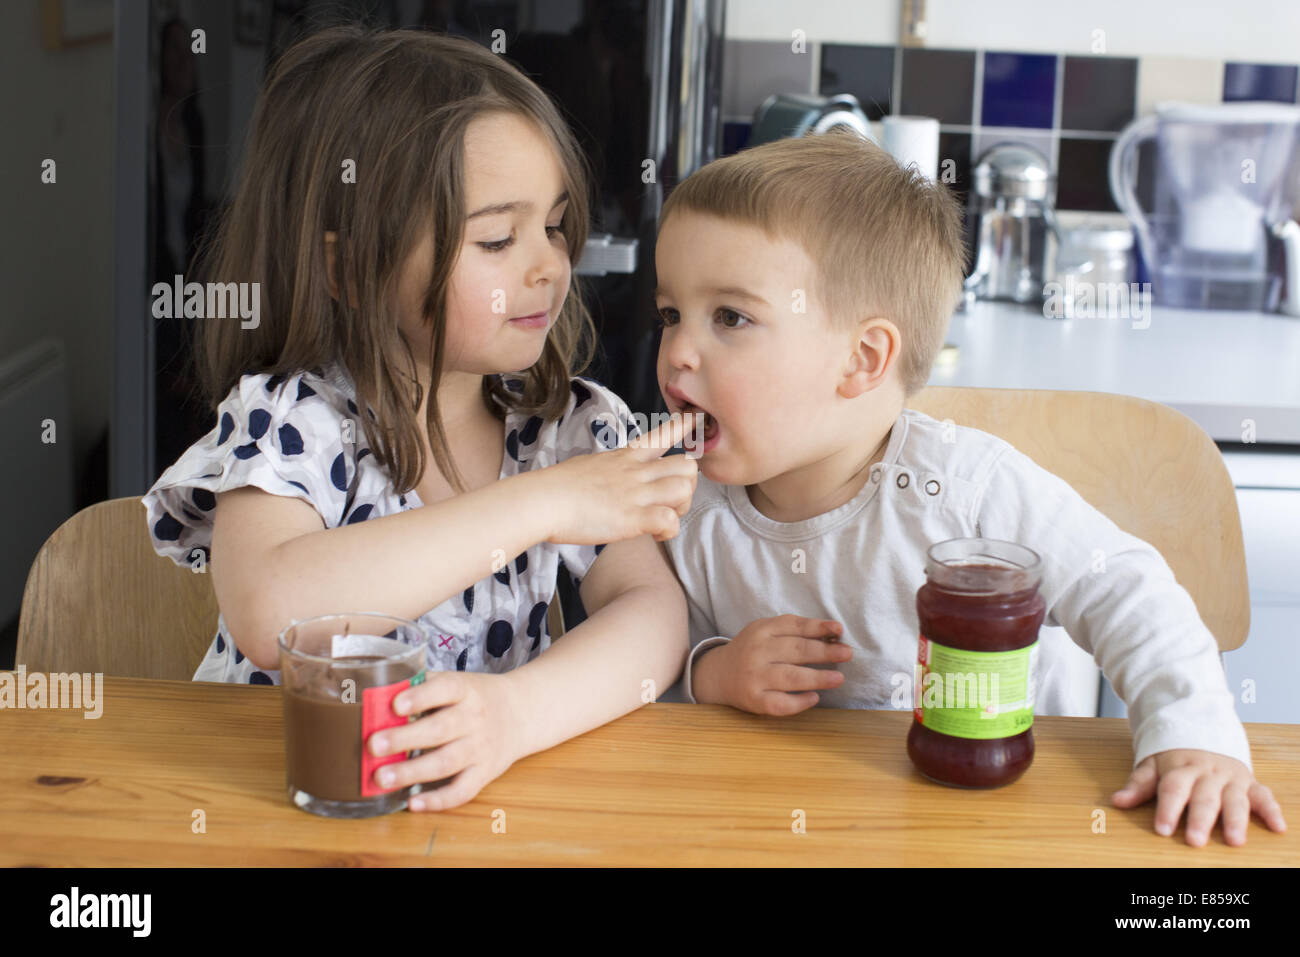 Young siblings tasting contents of jars with their fingers - Stock Image